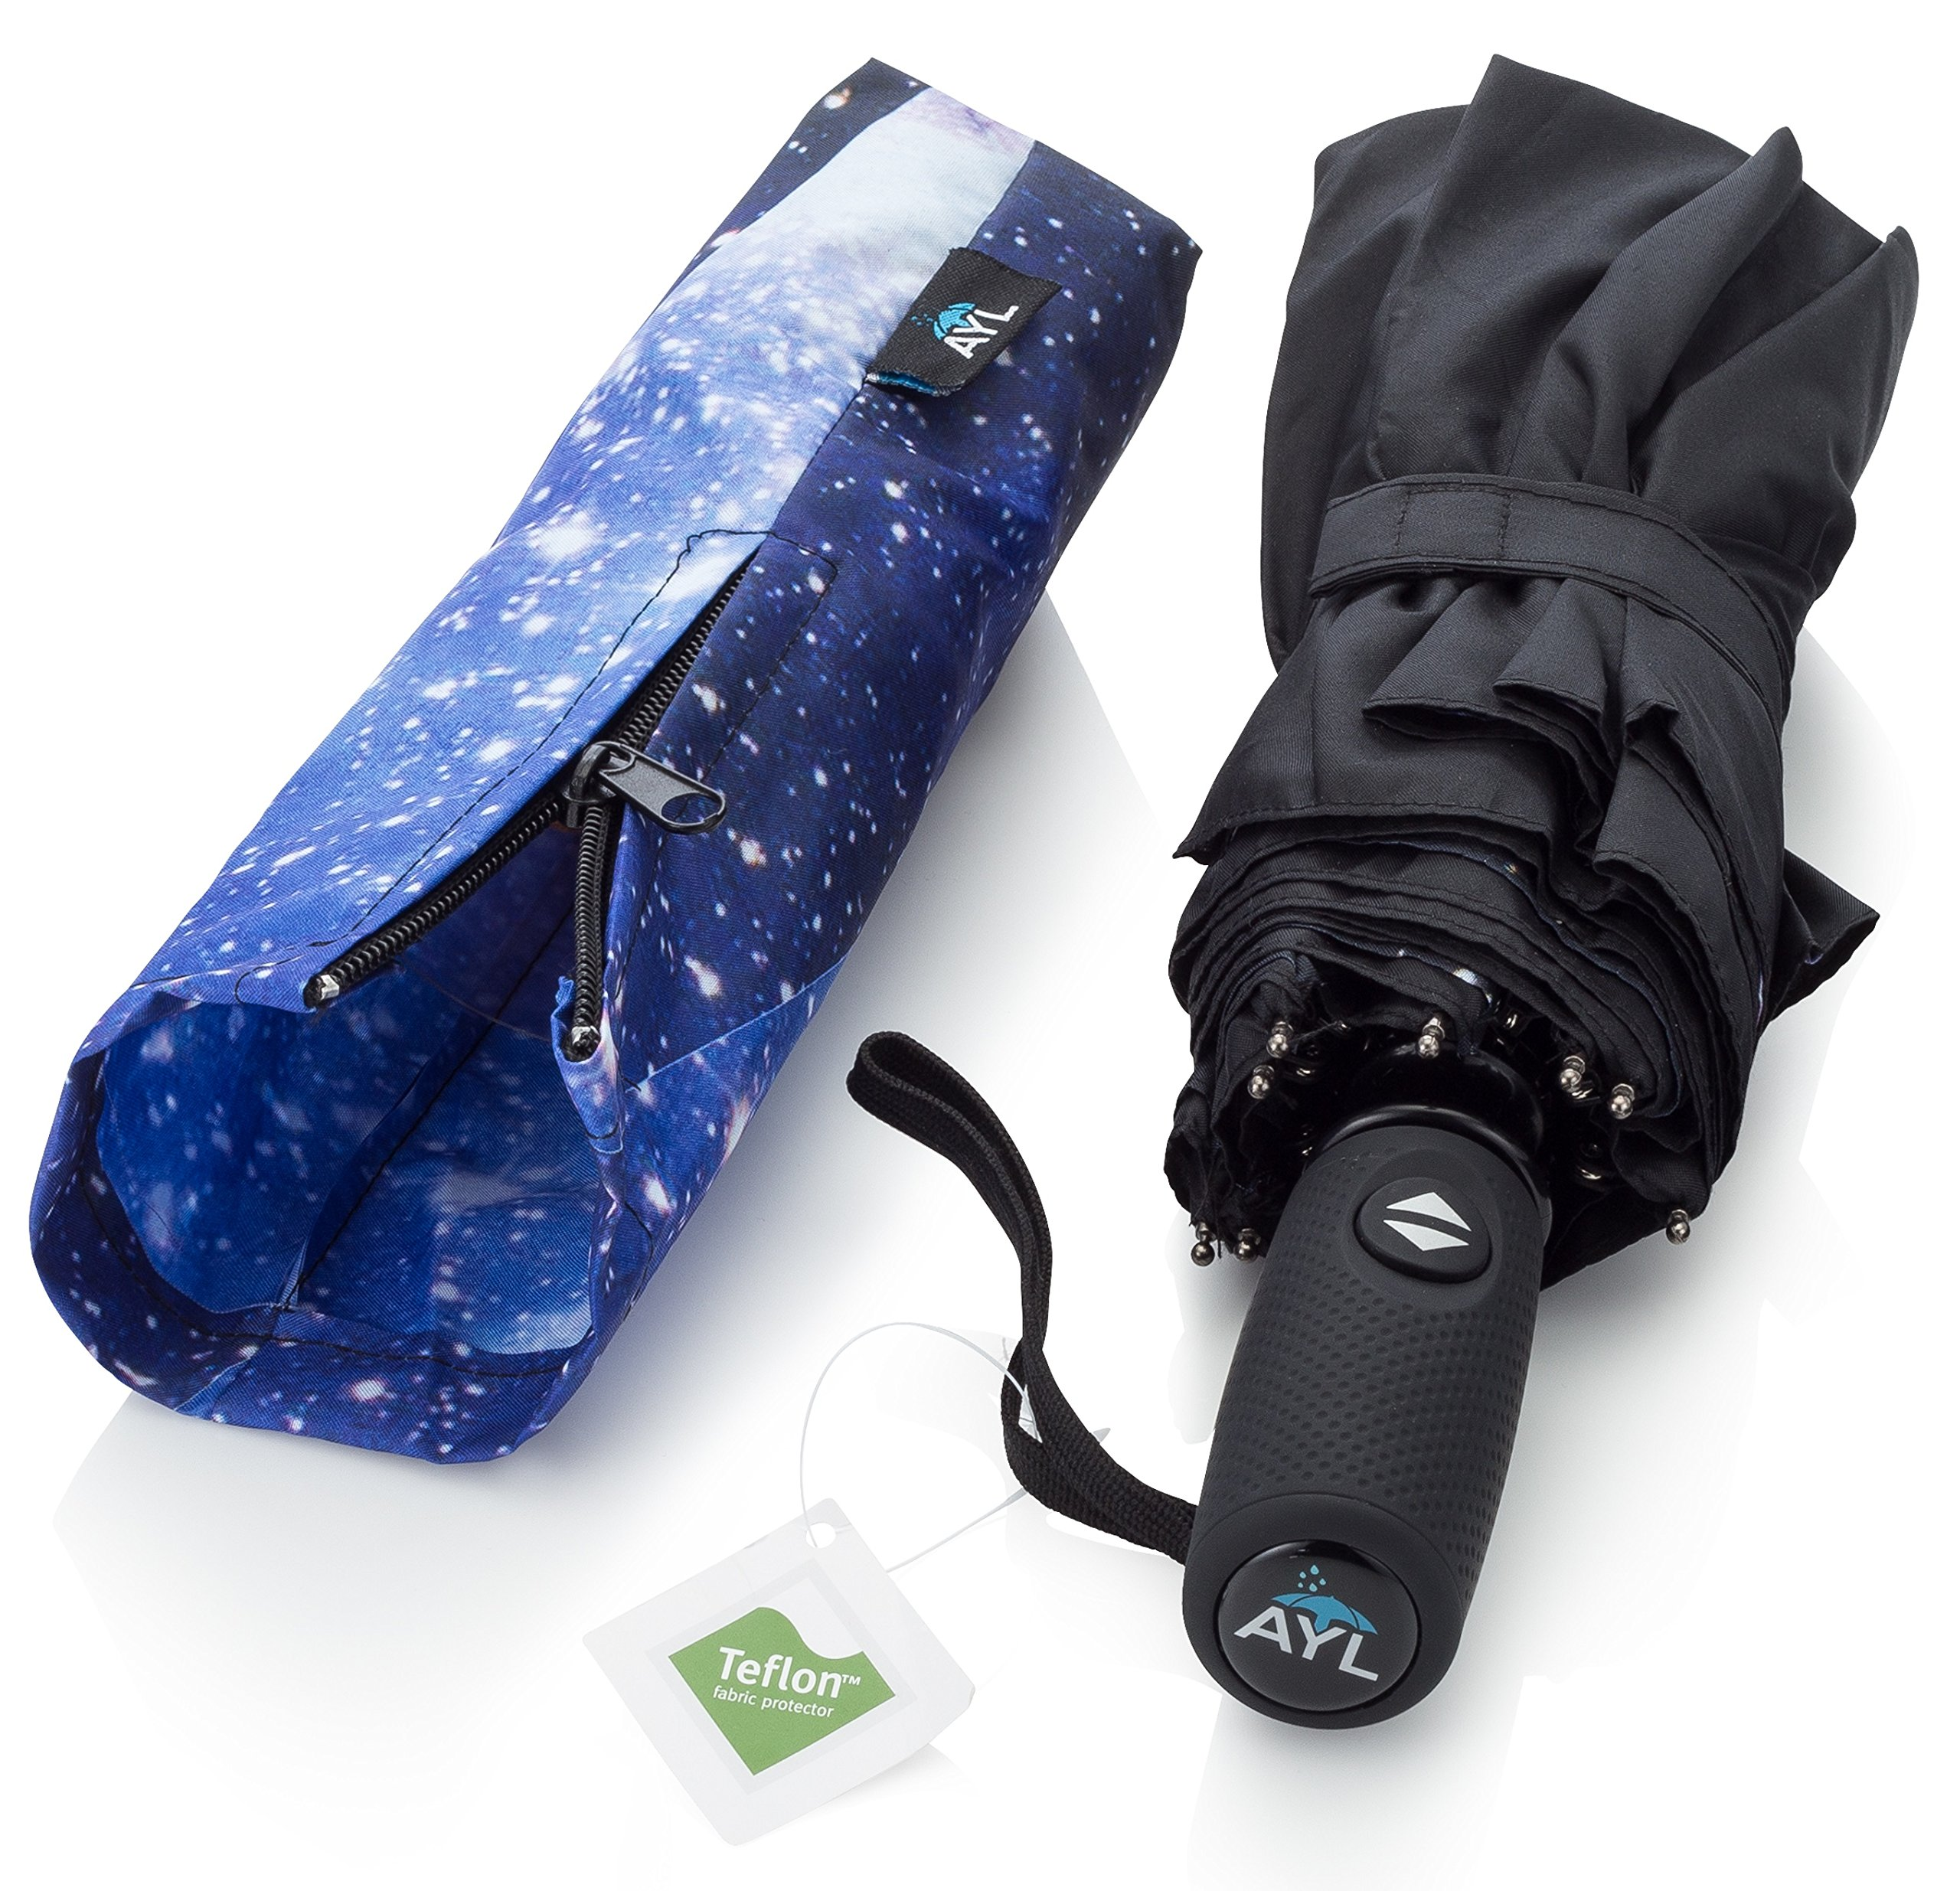 AYL Windproof Travel Umbrella with Teflon Coating and Zipper Pouch (Starry Night)